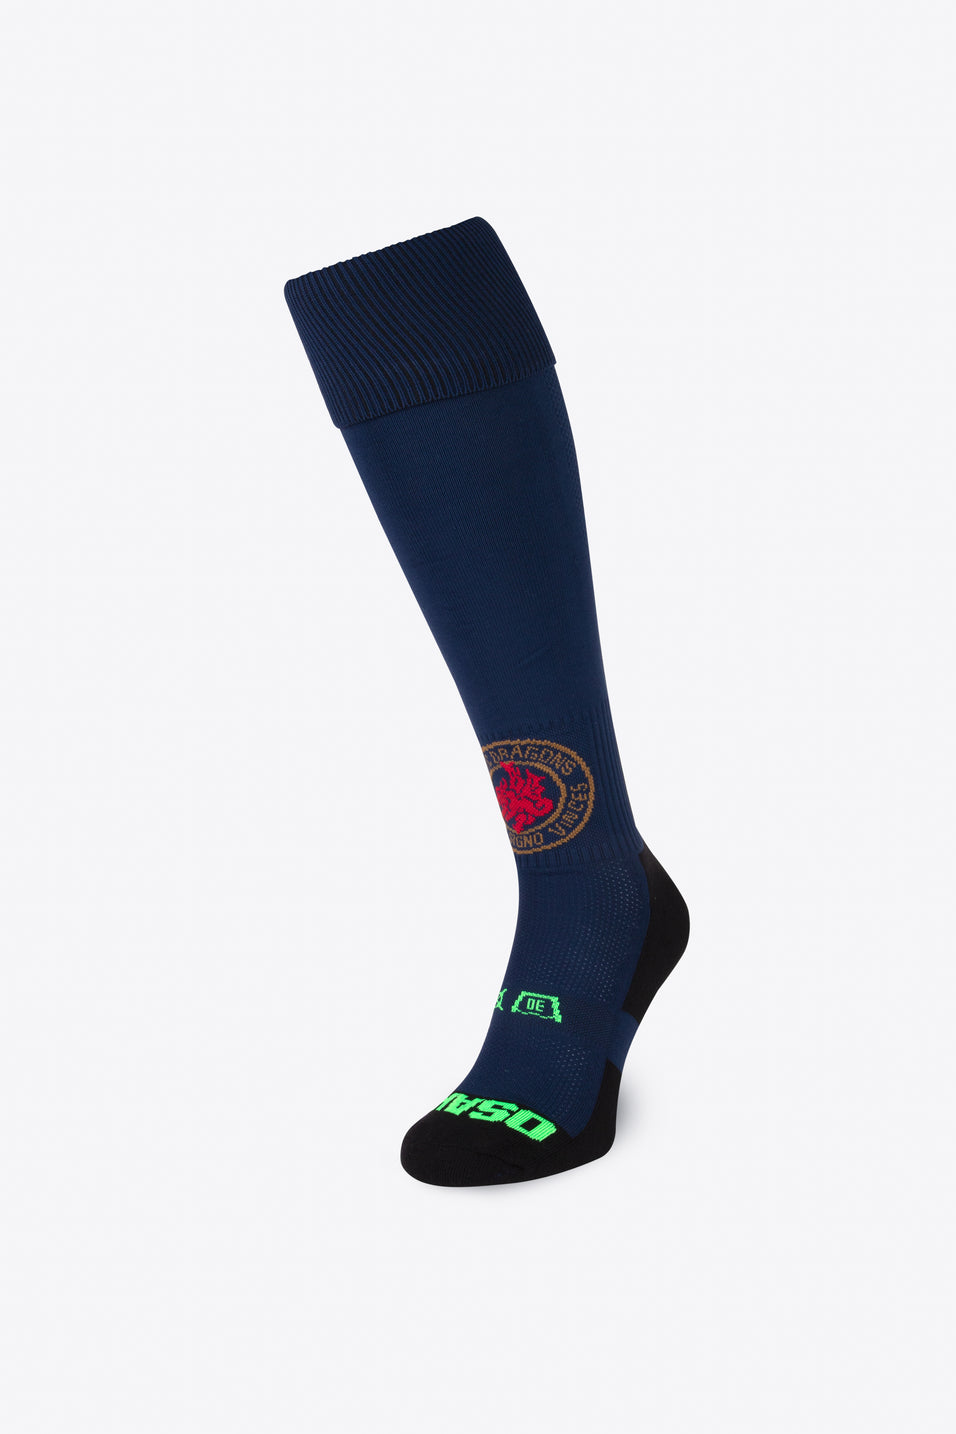 SOX KHC Dragons - Navy